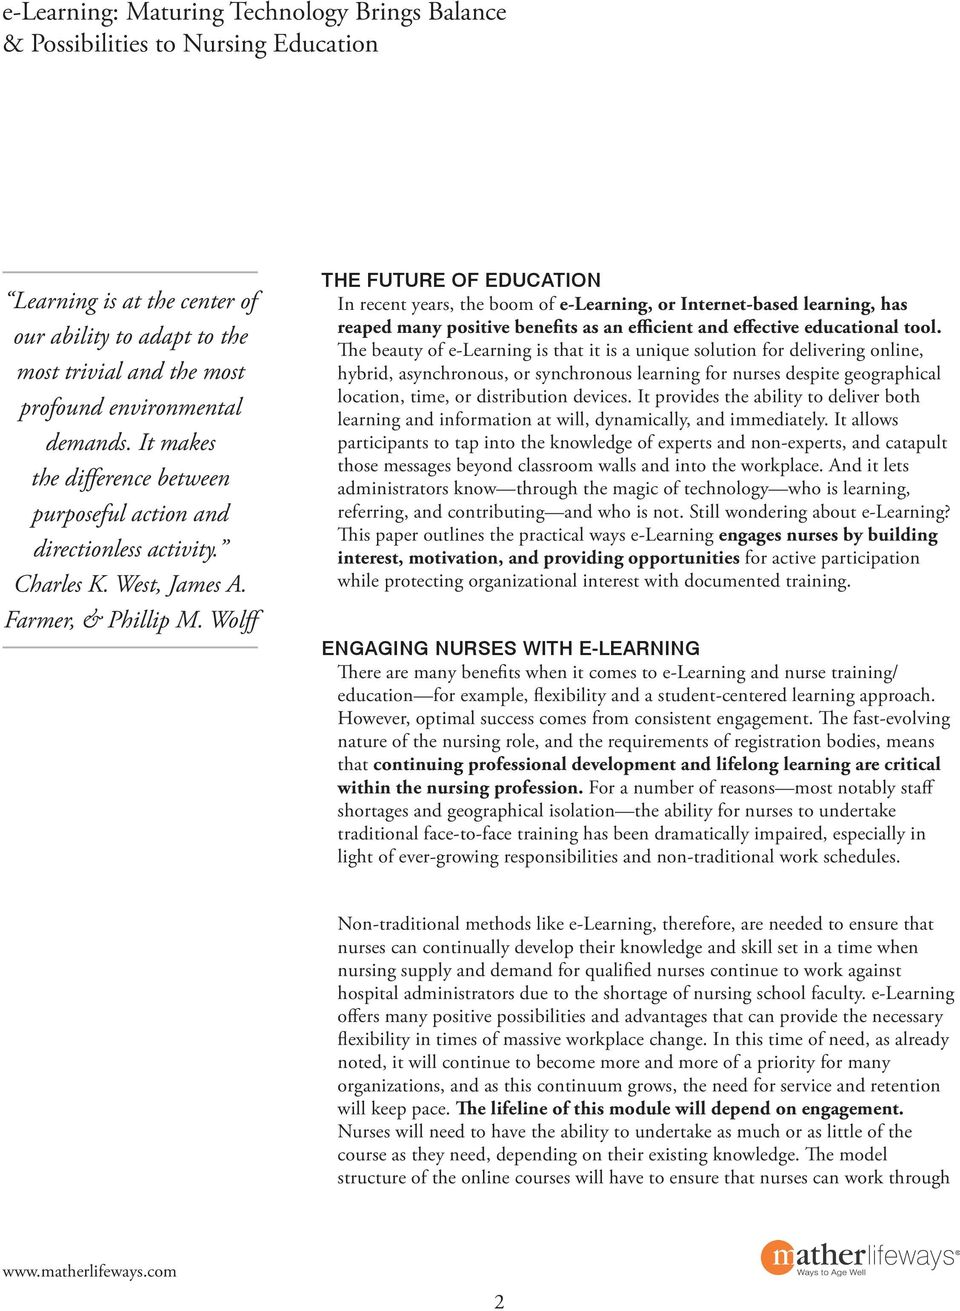 Wolff The Future of Education In recent years, the boom of e-learning, or Internet-based learning, has reaped many positive benefits as an efficient and effective educational tool.